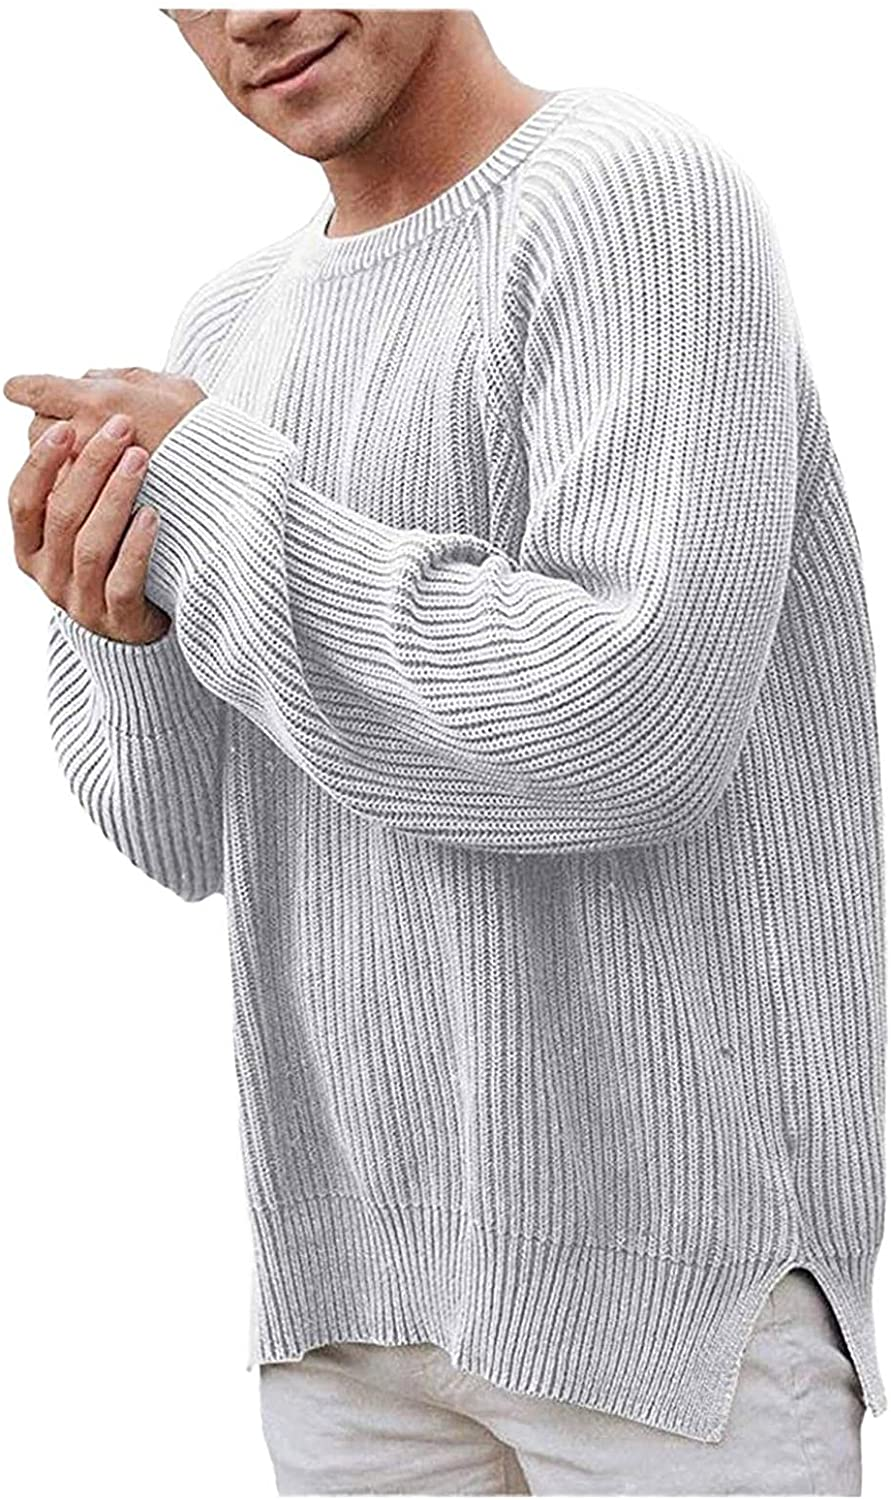 WoCoo Men's Cable Knitted Sweaters Solid Long Sleeve Round Neck Pullover Sweatershirt Casual Loose Chunky Thermal Top Blouse